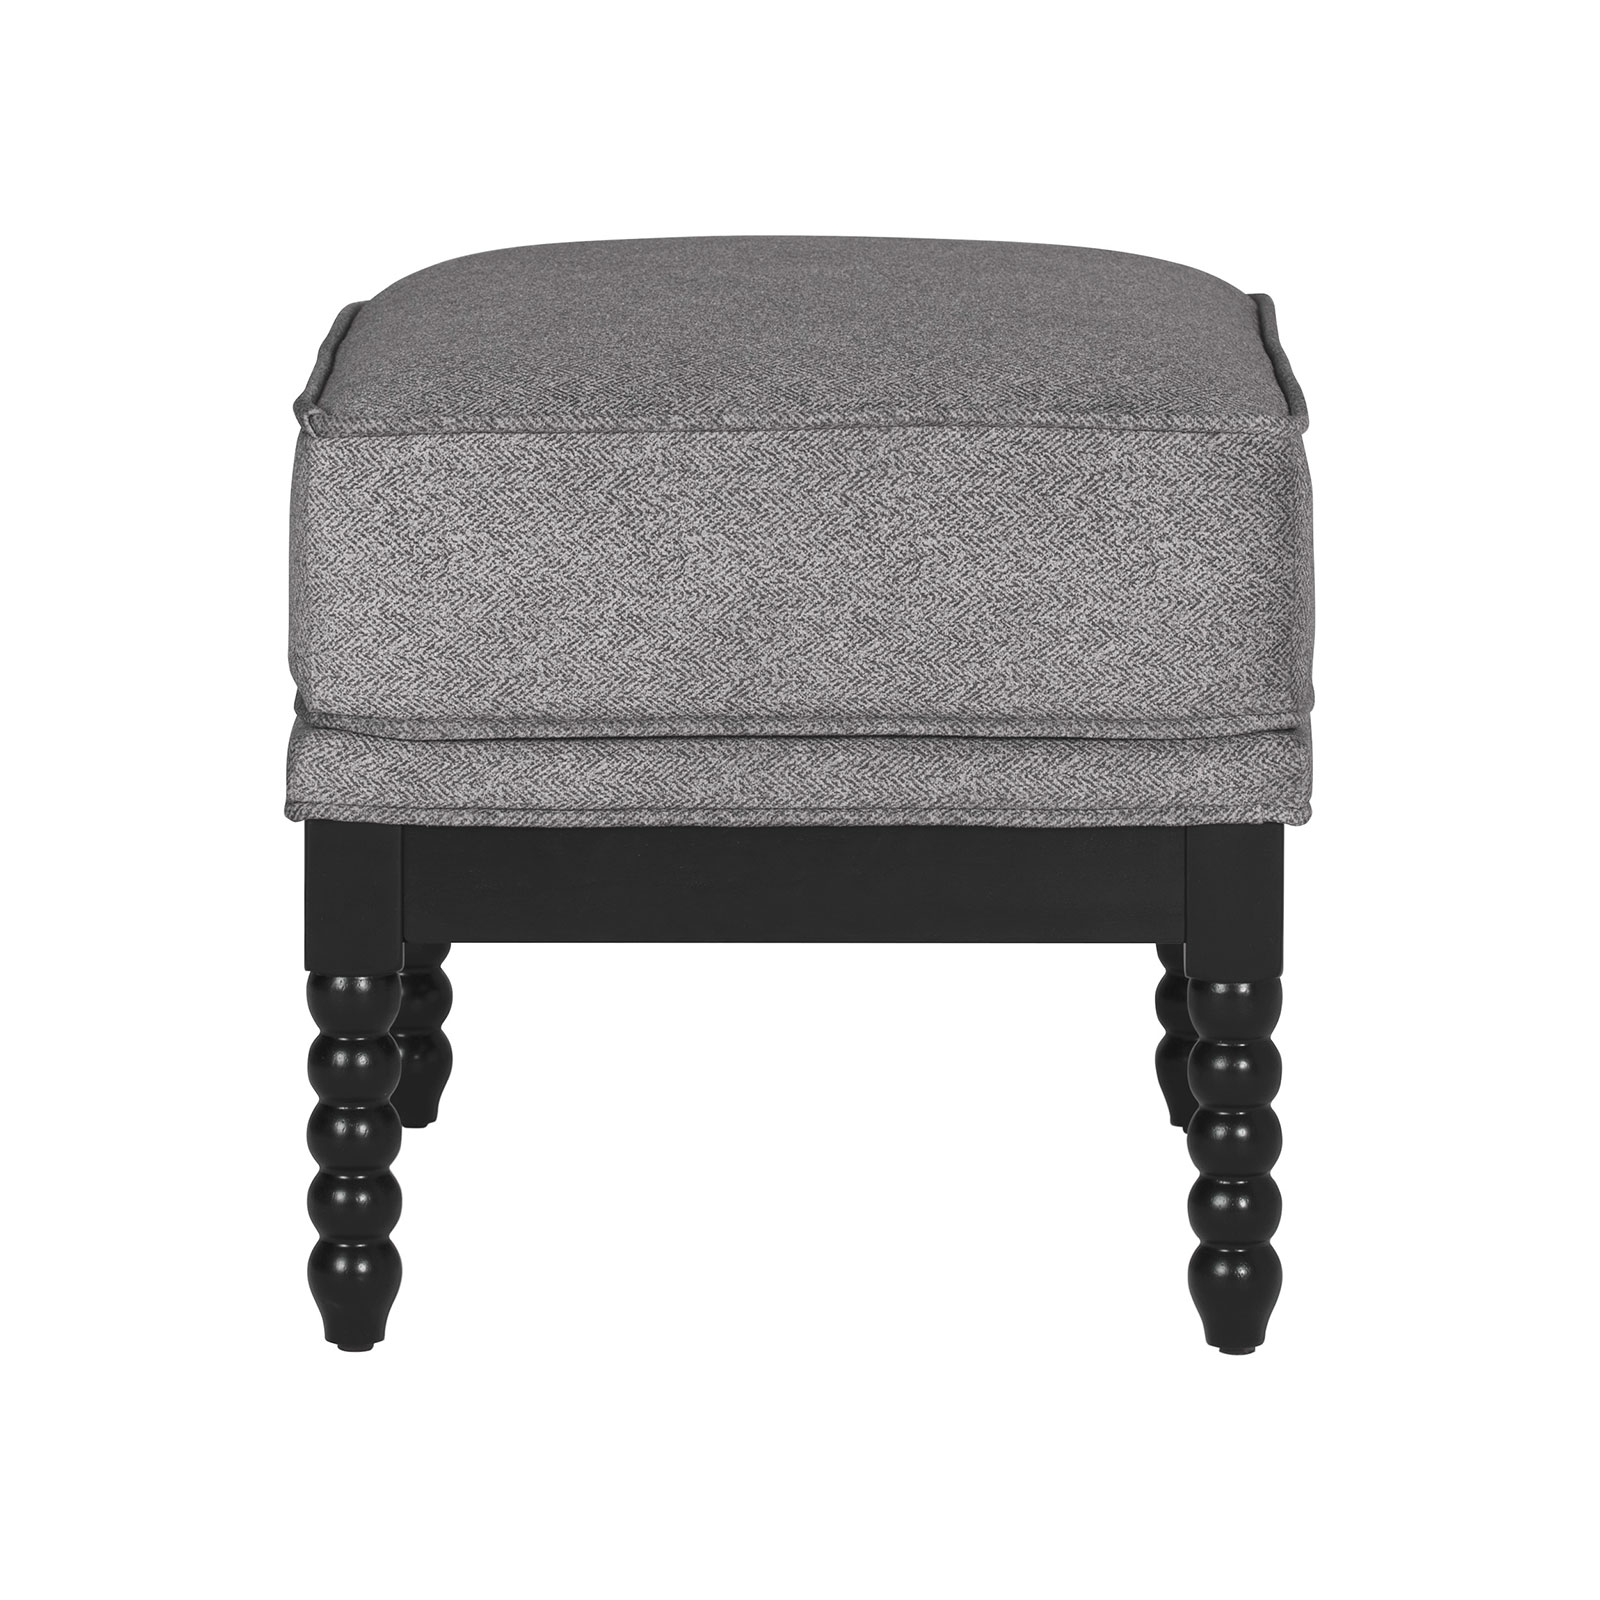 72042-Colonnade-Spindle-Ottoman-side